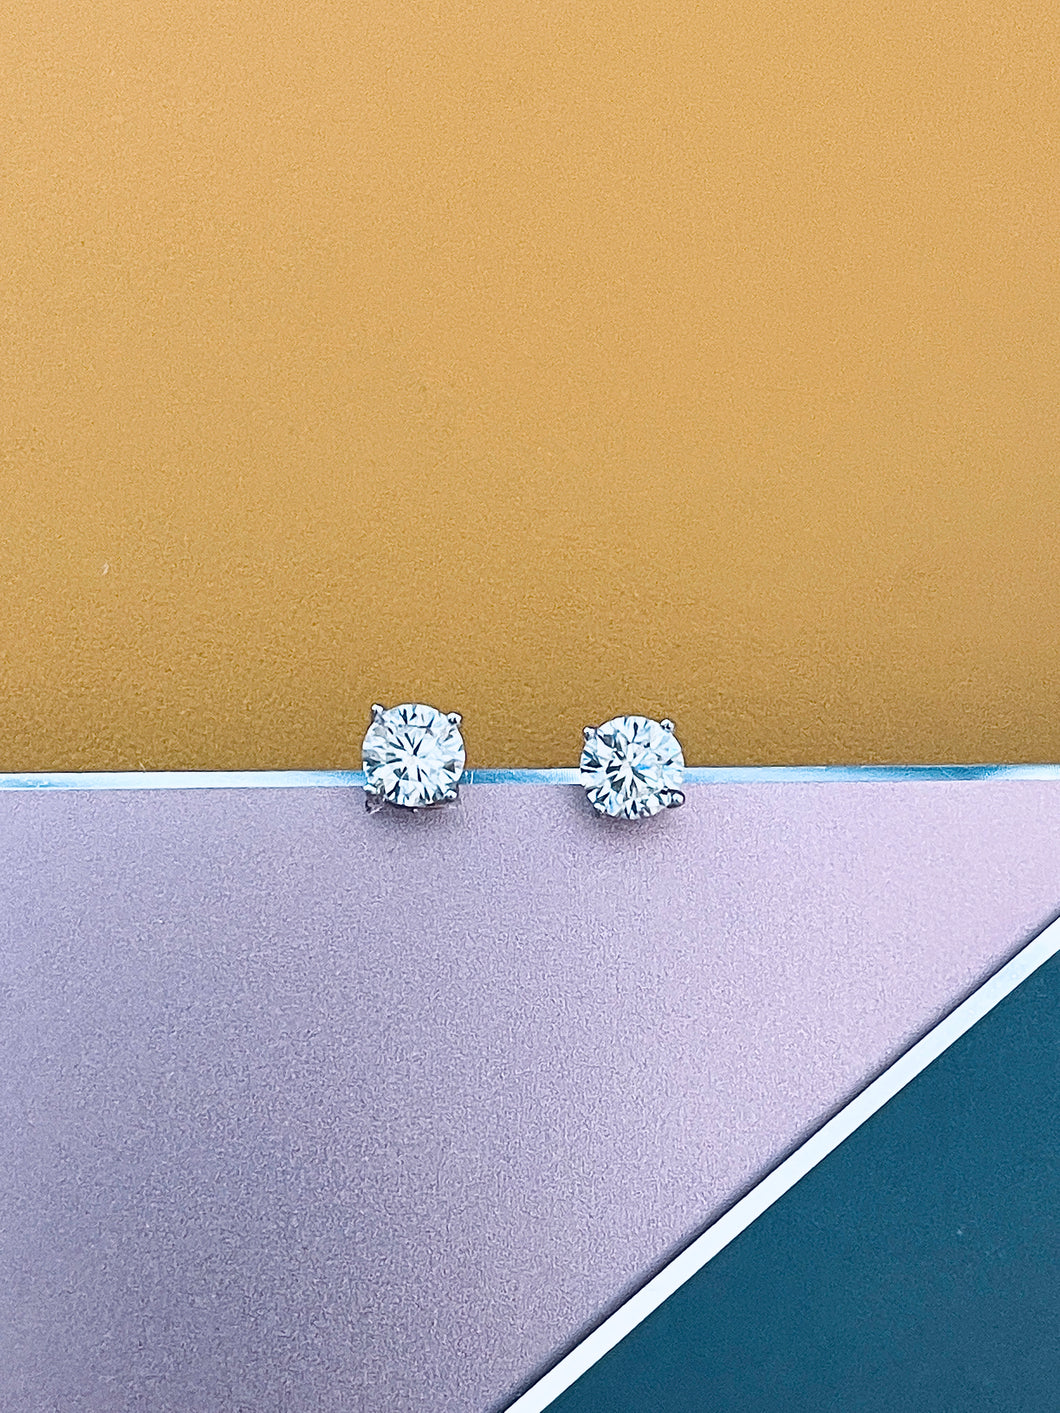 EMMA - 1ct Four Prong Setting Moissanite Stud Earrings In Silver